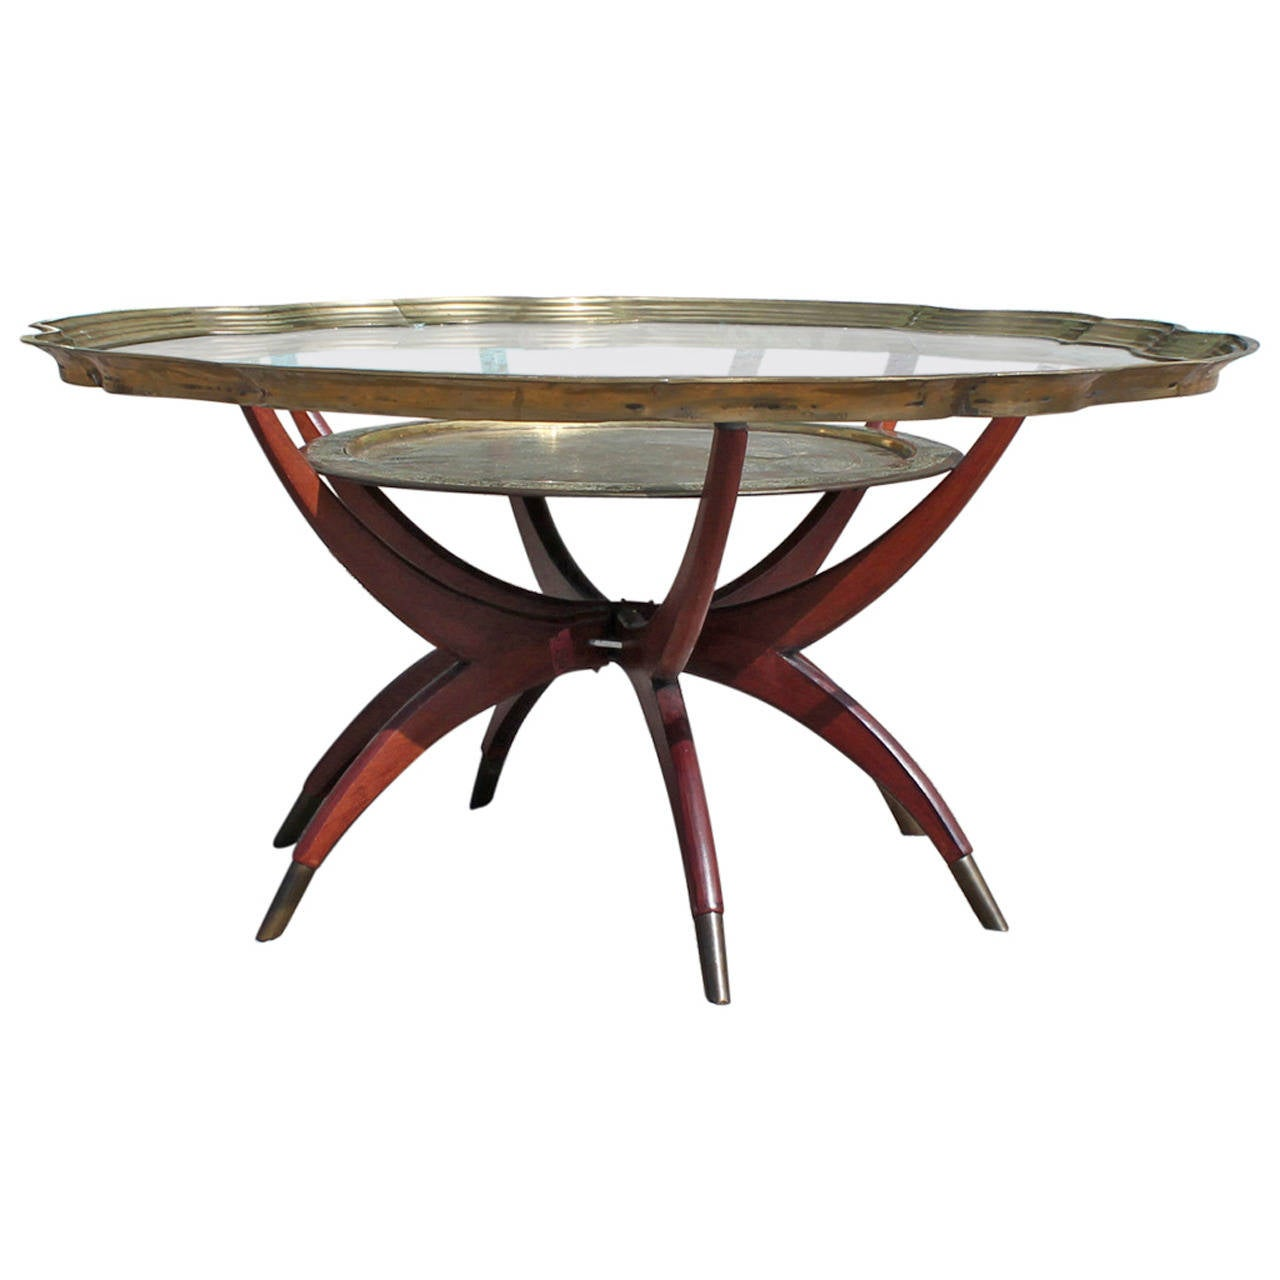 Hollywood Regency Brass Baker Spider Base Coffee Table With Glass Top For Sale At 1stdibs: glass coffee table base